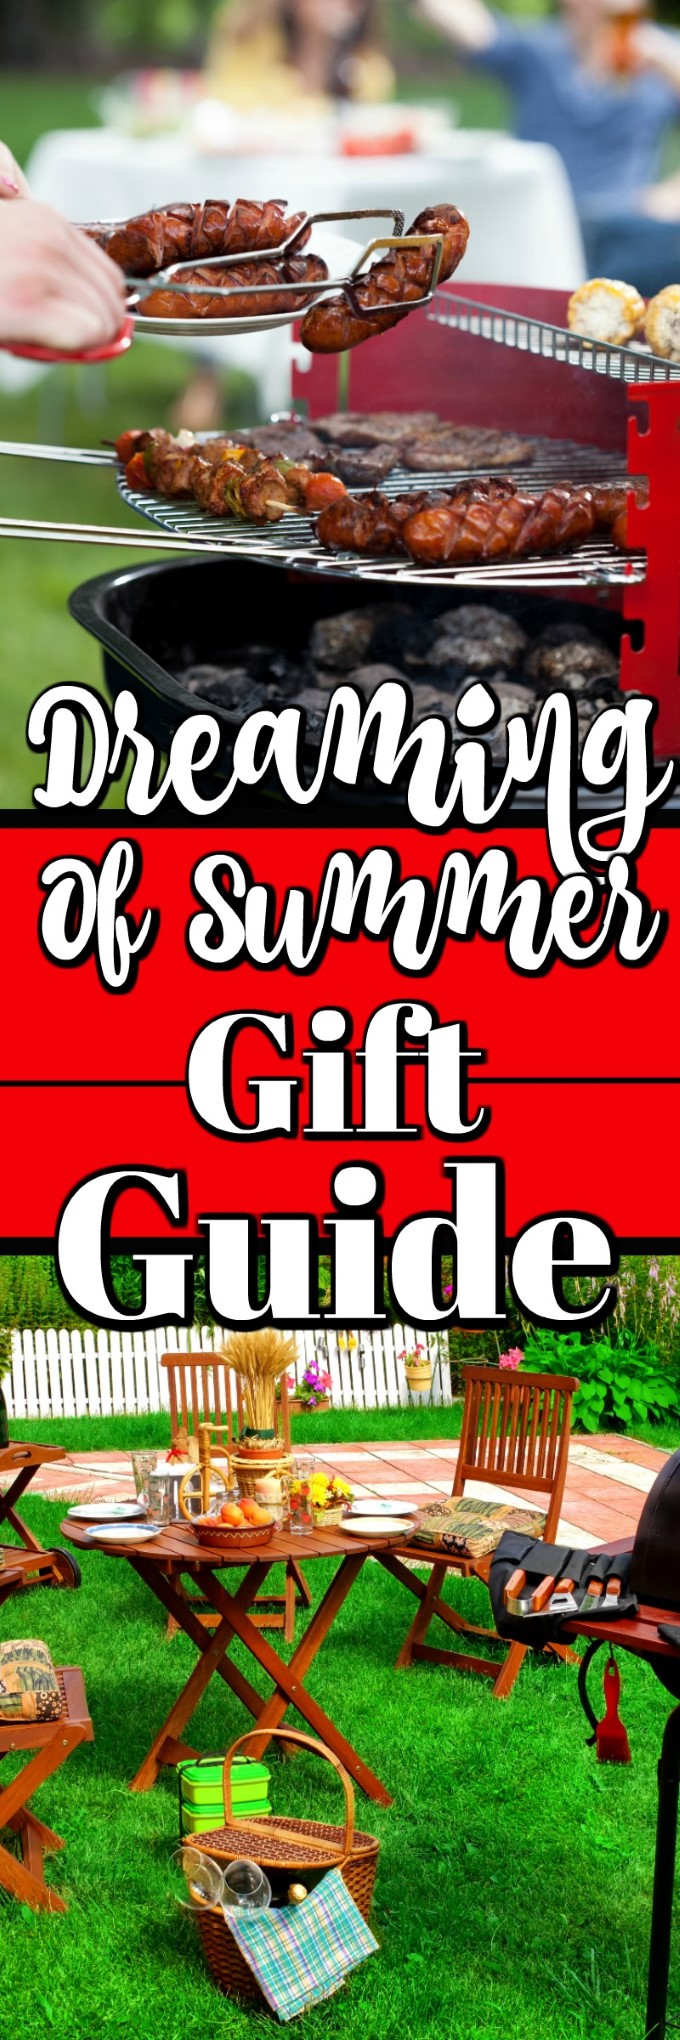 Dreaming of Summer Gift Guide is perfect for all your BBQing, Grilling and Smoking needs. #BBQ #grilling #summer #picnic